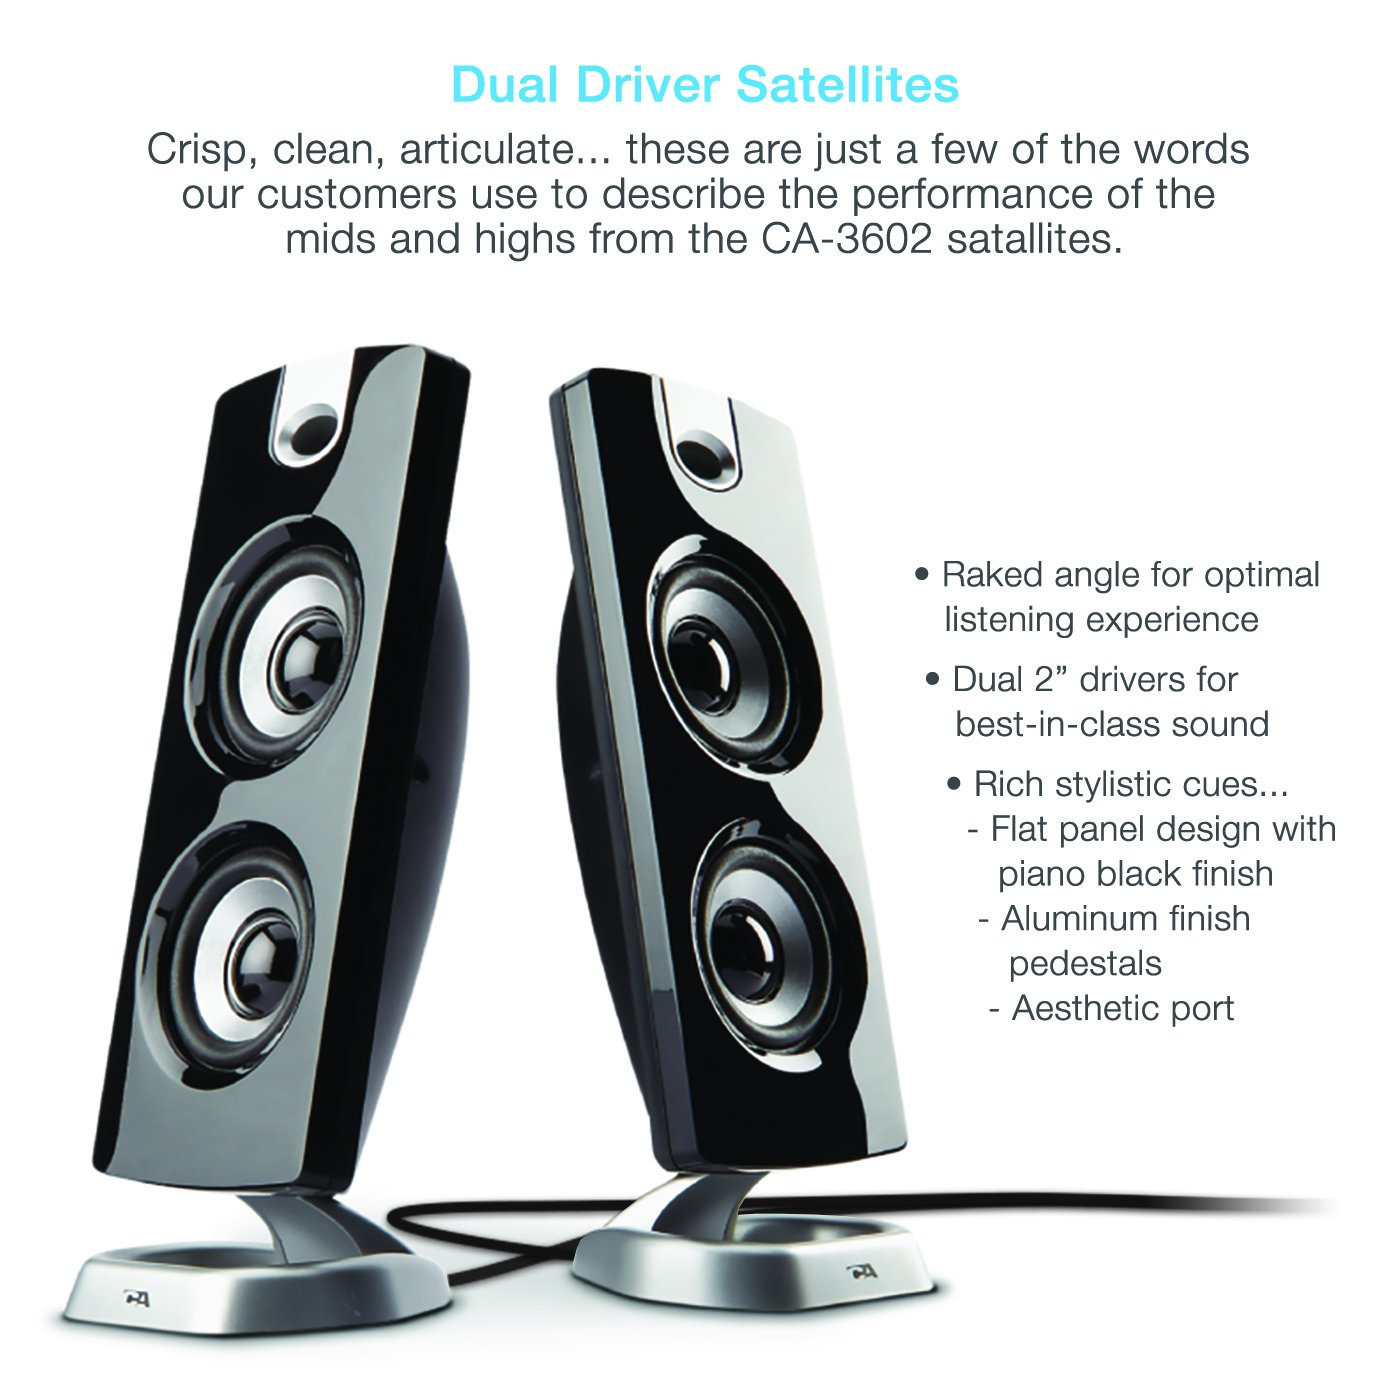 Cyber Acoustics CA-3602a 62W Desktop Computer Speaker with Subwoofer - Perfect 2.1 Gaming and Multimedia PC speakers by Cyber Acoustics (Image #3)